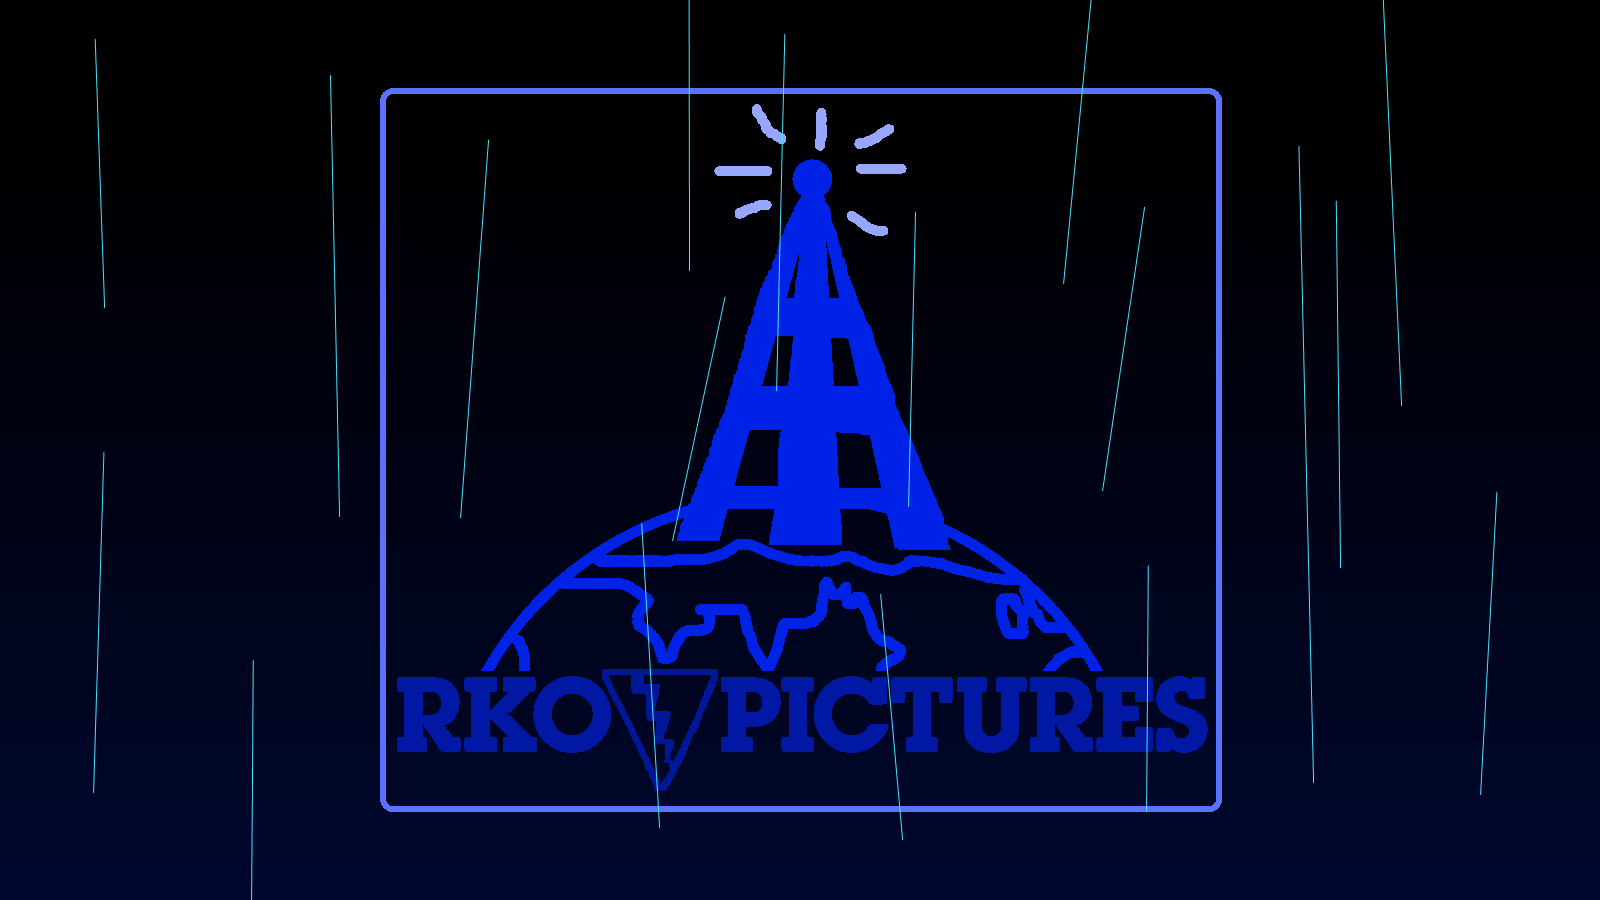 Rko_pictures_logo_from_beach